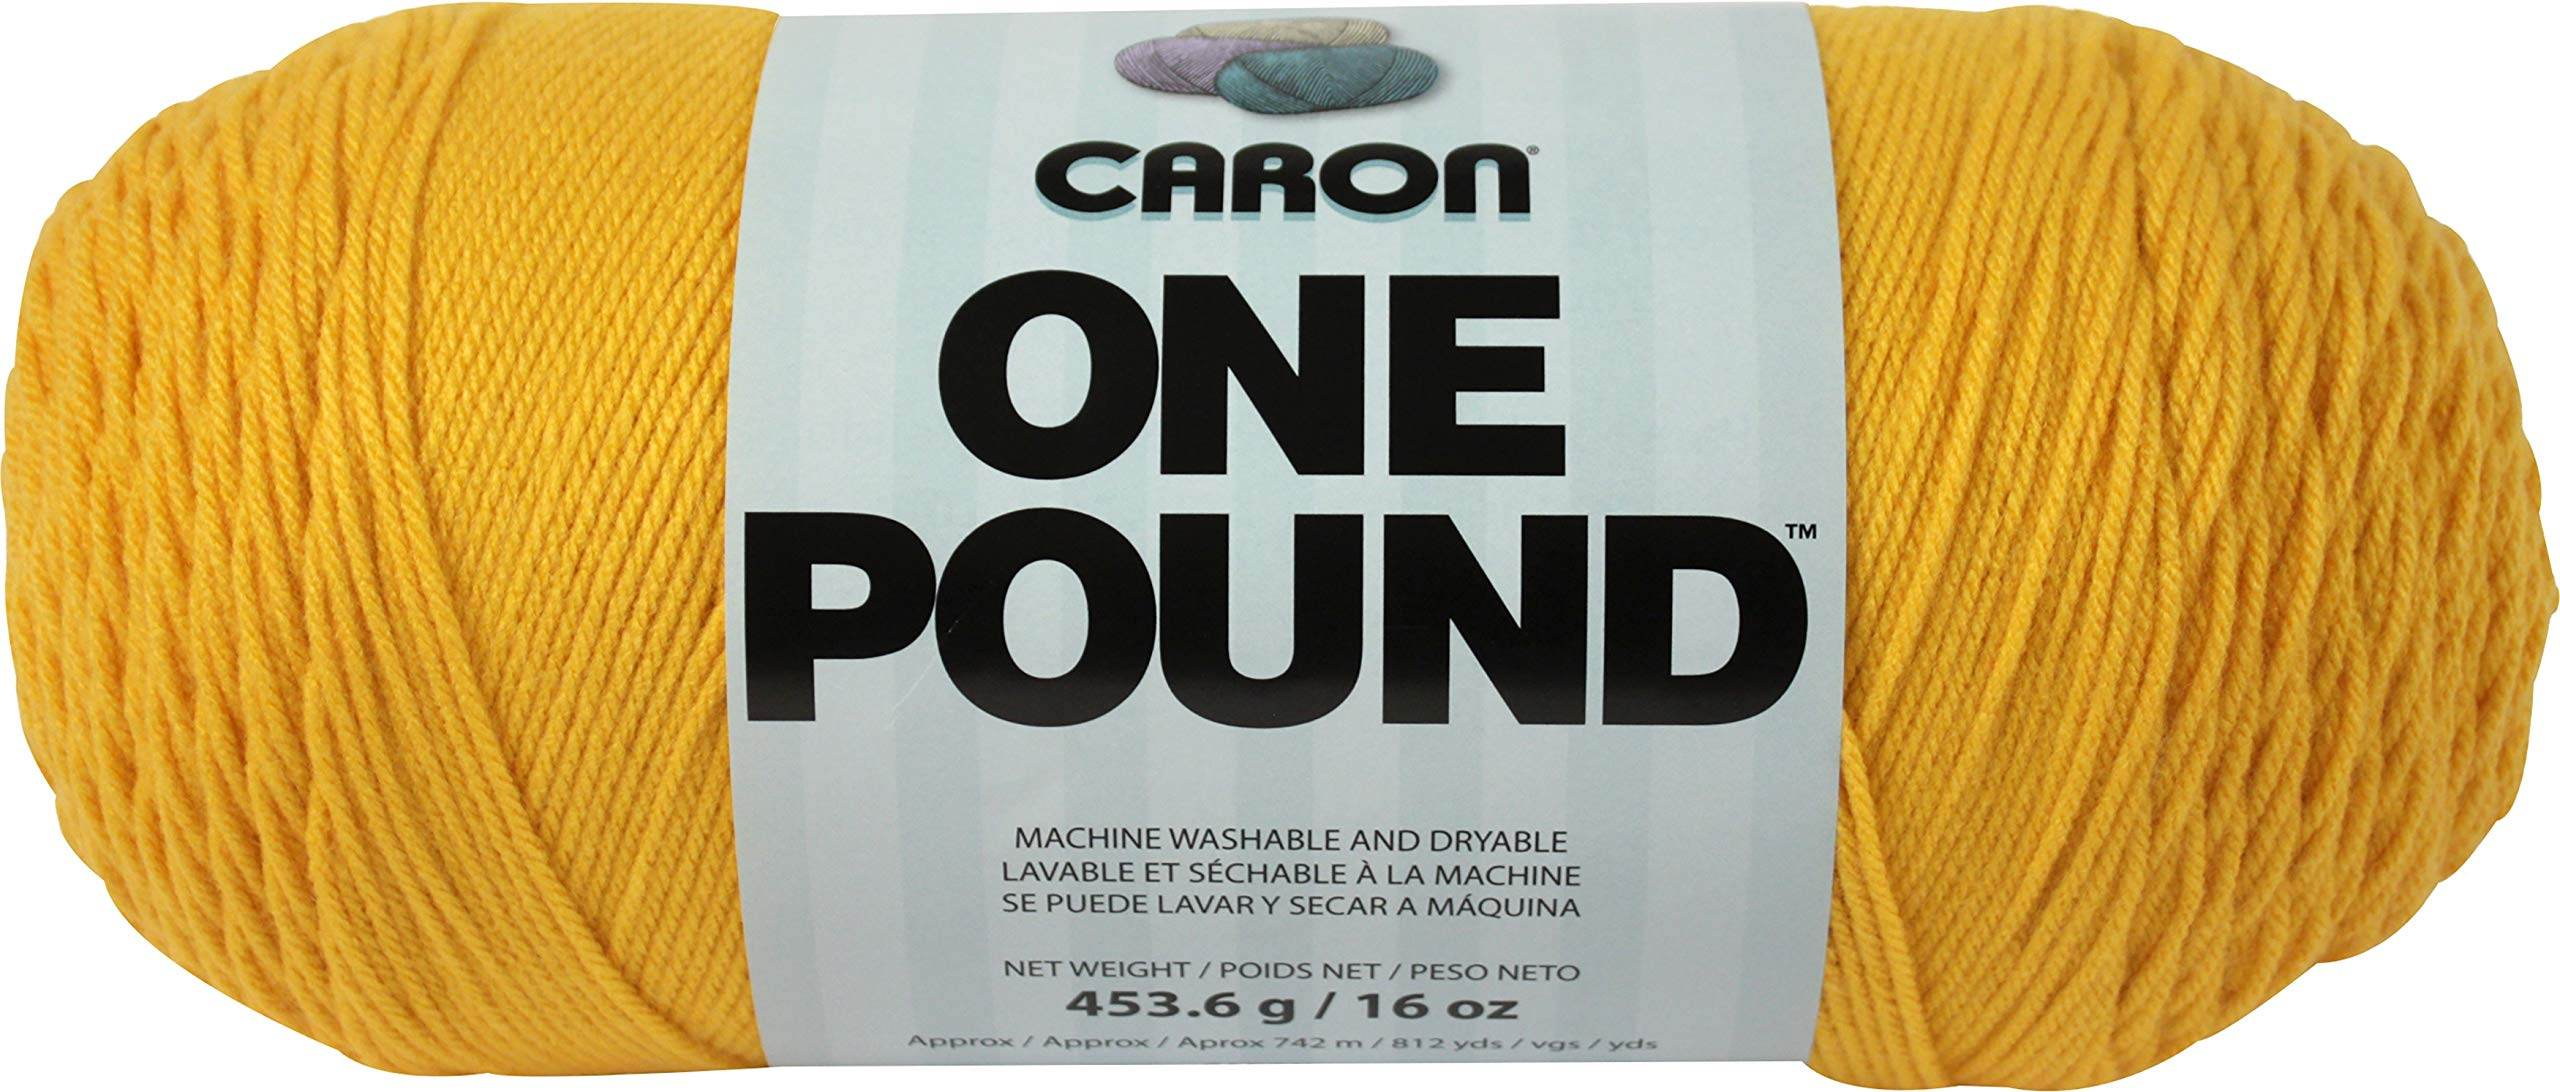 Caron 99607 One Pound Yarn-Sunflower, Multipack of 12, Pack by Caron (Image #2)